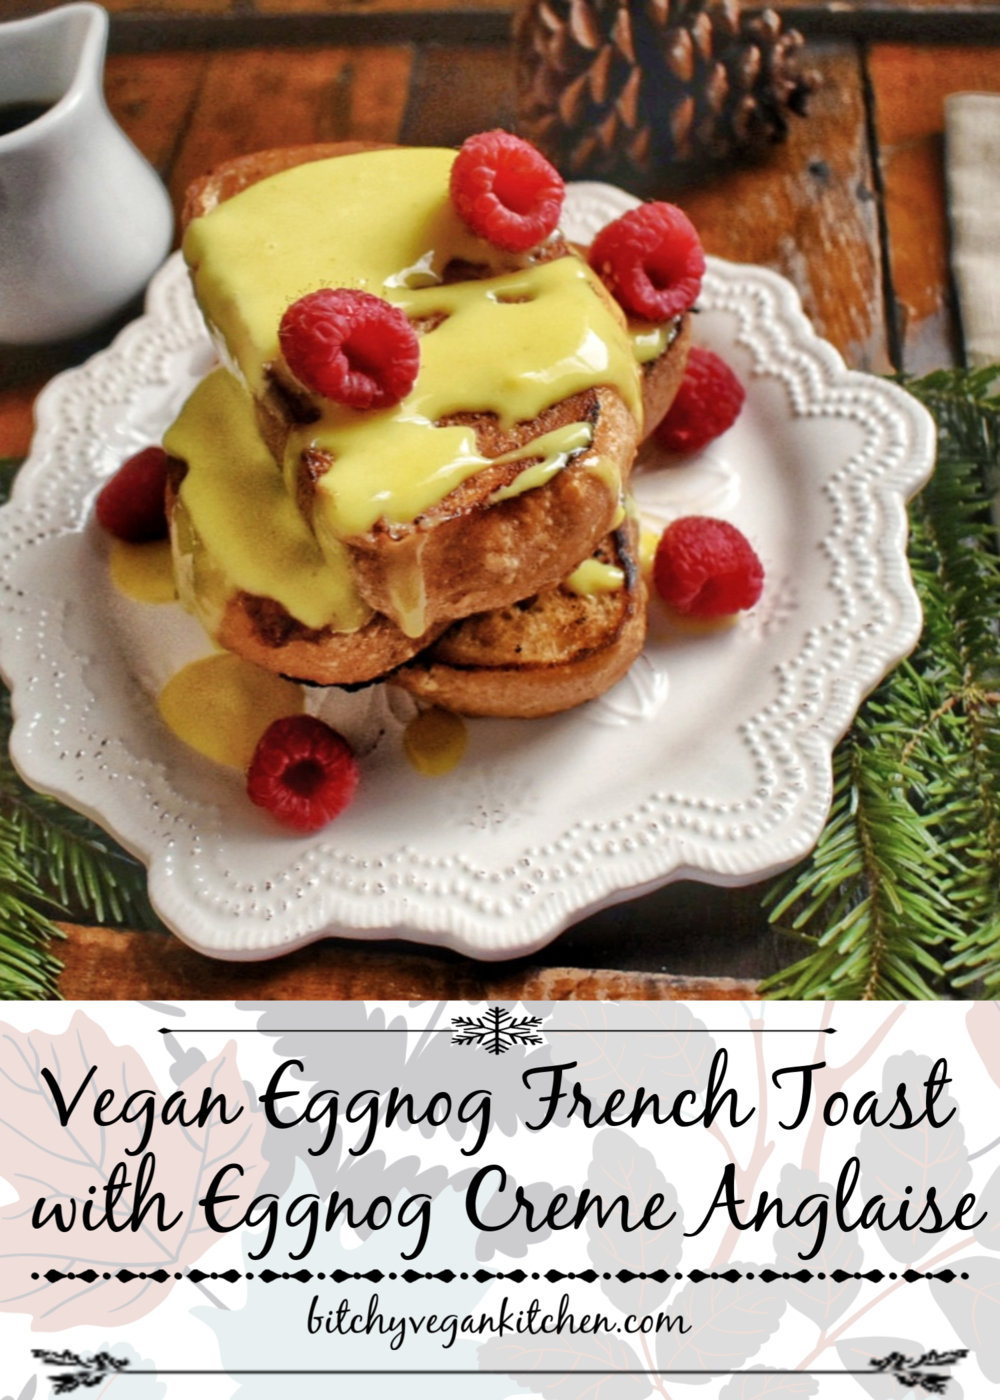 Vegan Eggnog French Toast with Eggnog Creme Anglaise - The Bitchy Baker